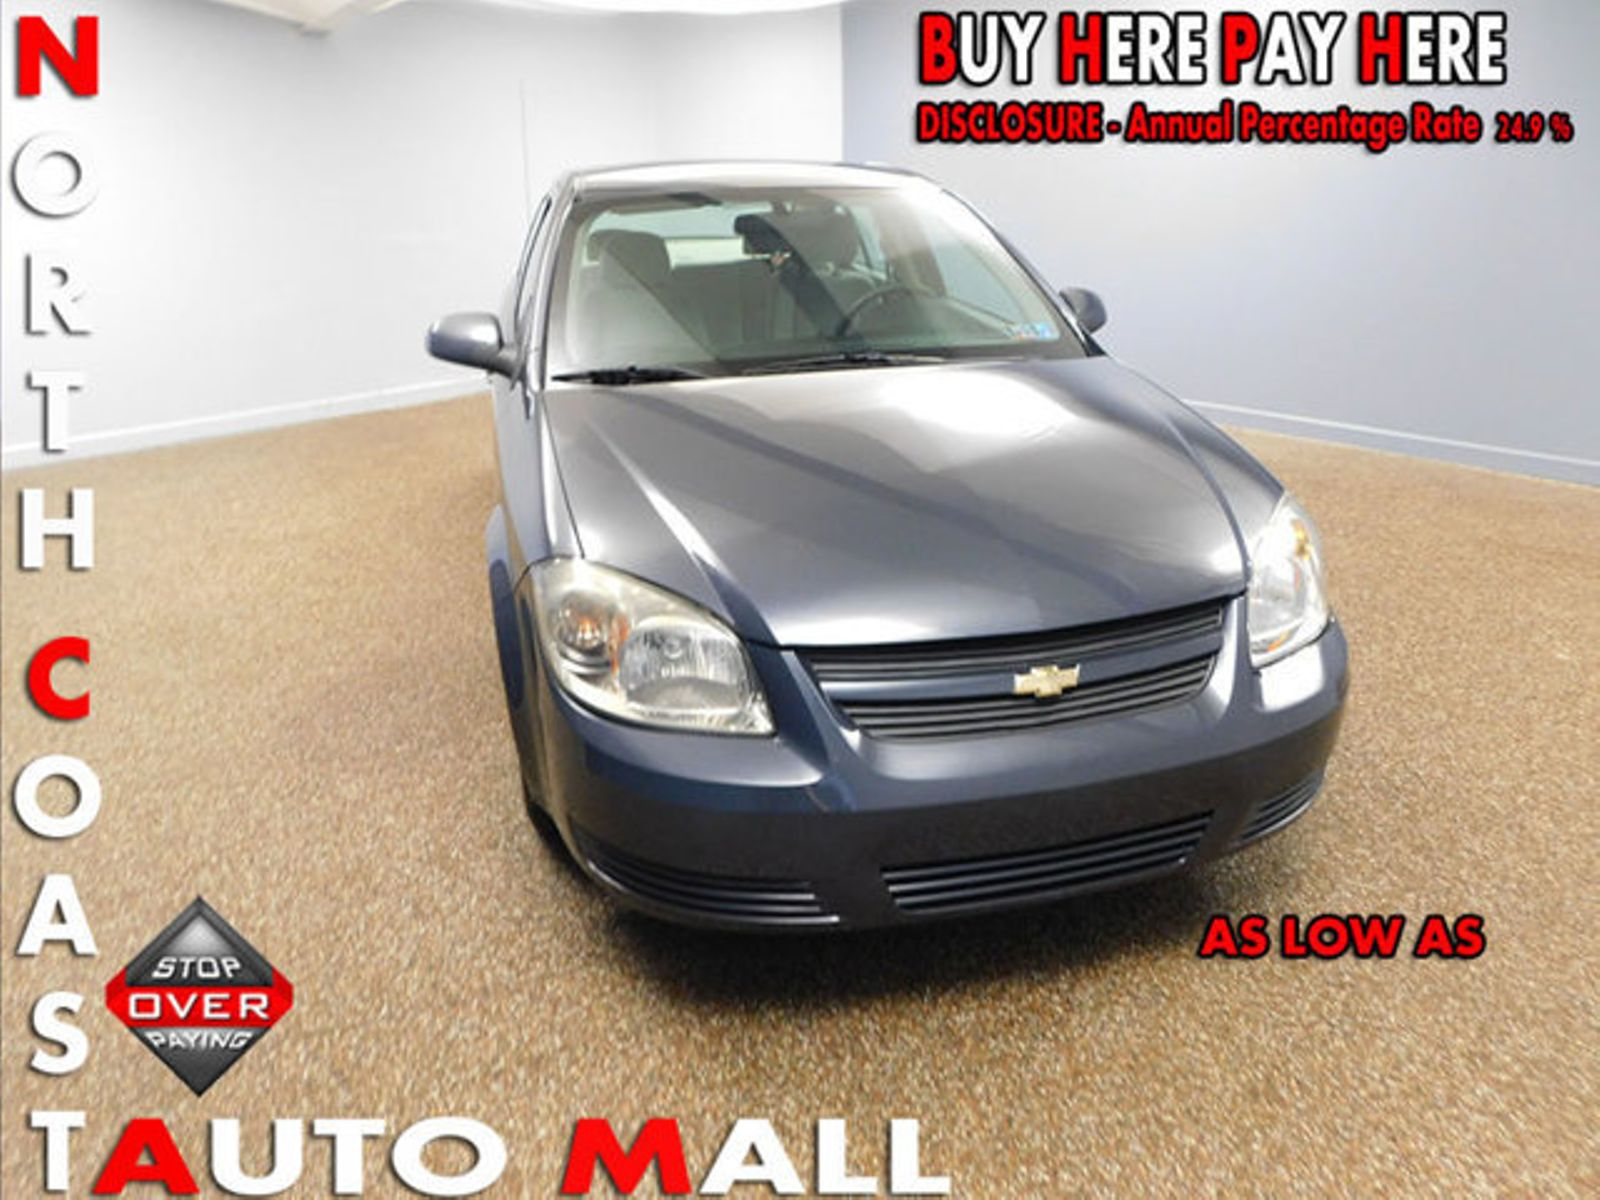 2008 Chevrolet Cobalt LT city Ohio North Coast Auto Mall of Bedford in  Bedford, Ohio ...